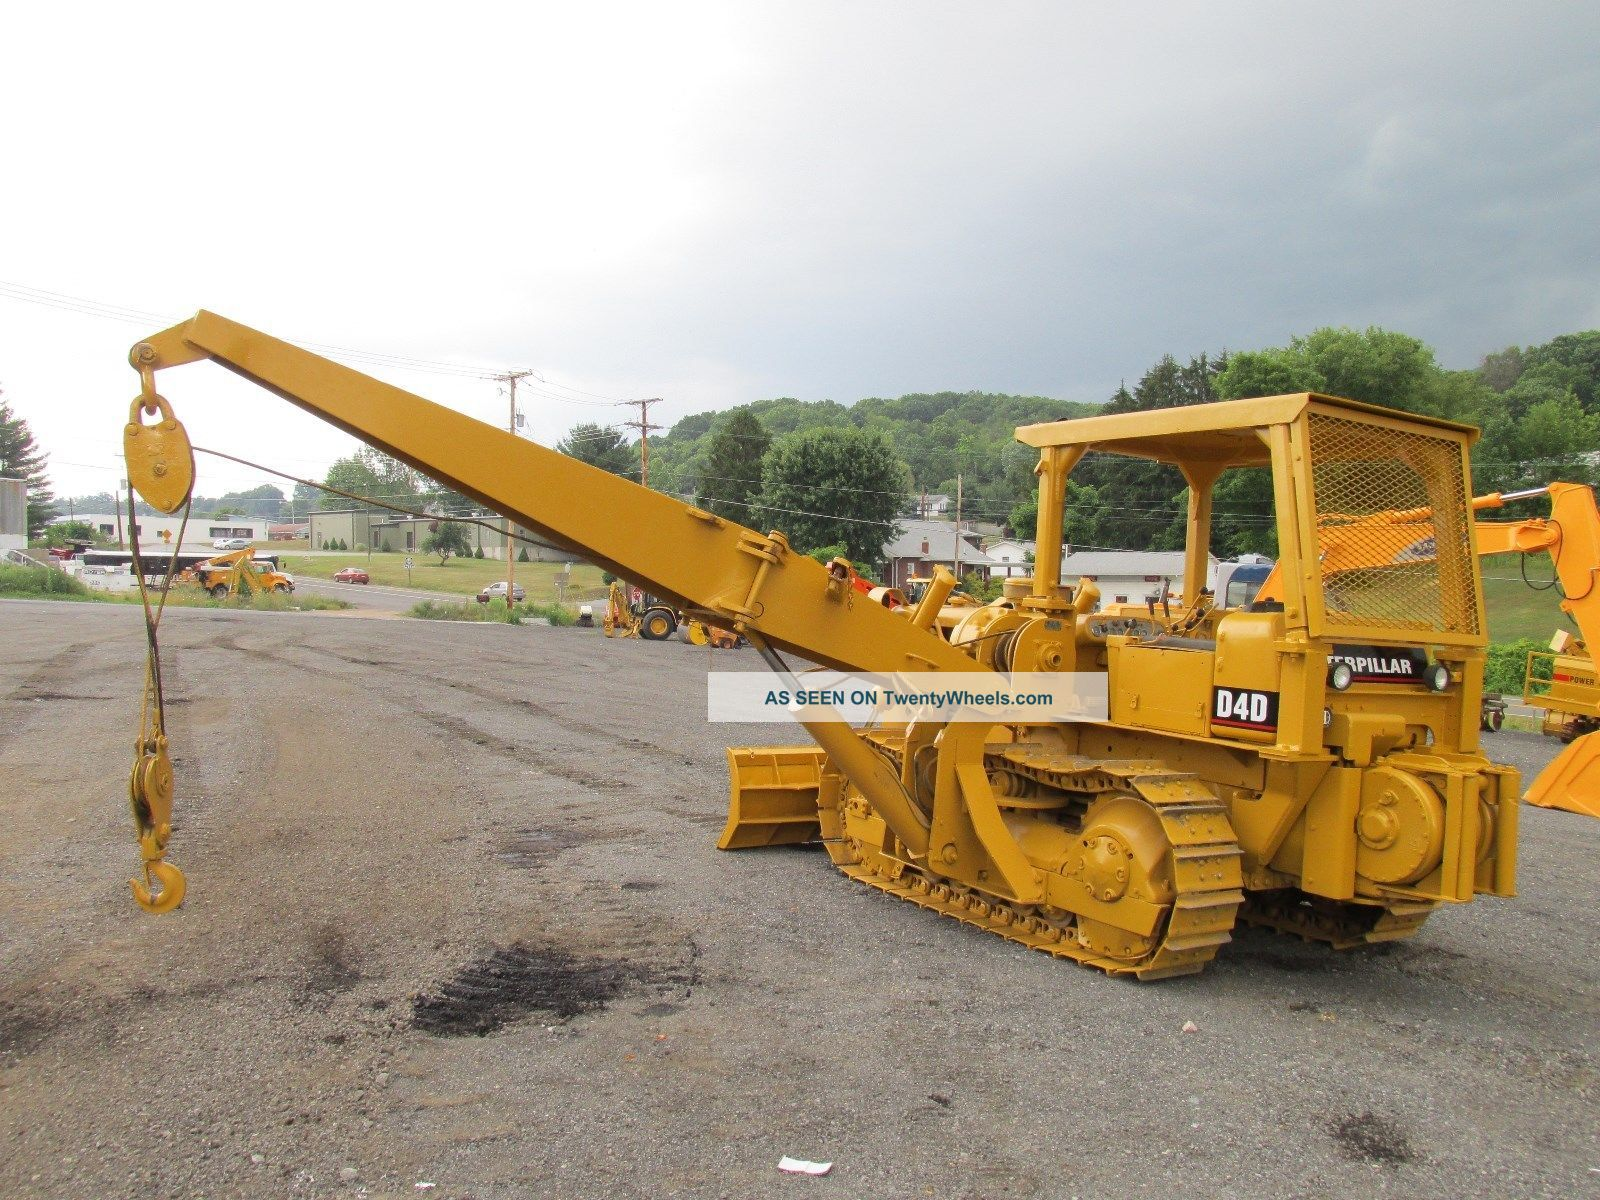 posatubi  pipelayer-posatubi Caterpillar_d4d_crawler_dozer_pipelayer_winch_good_uc_power_shift_11_lgw